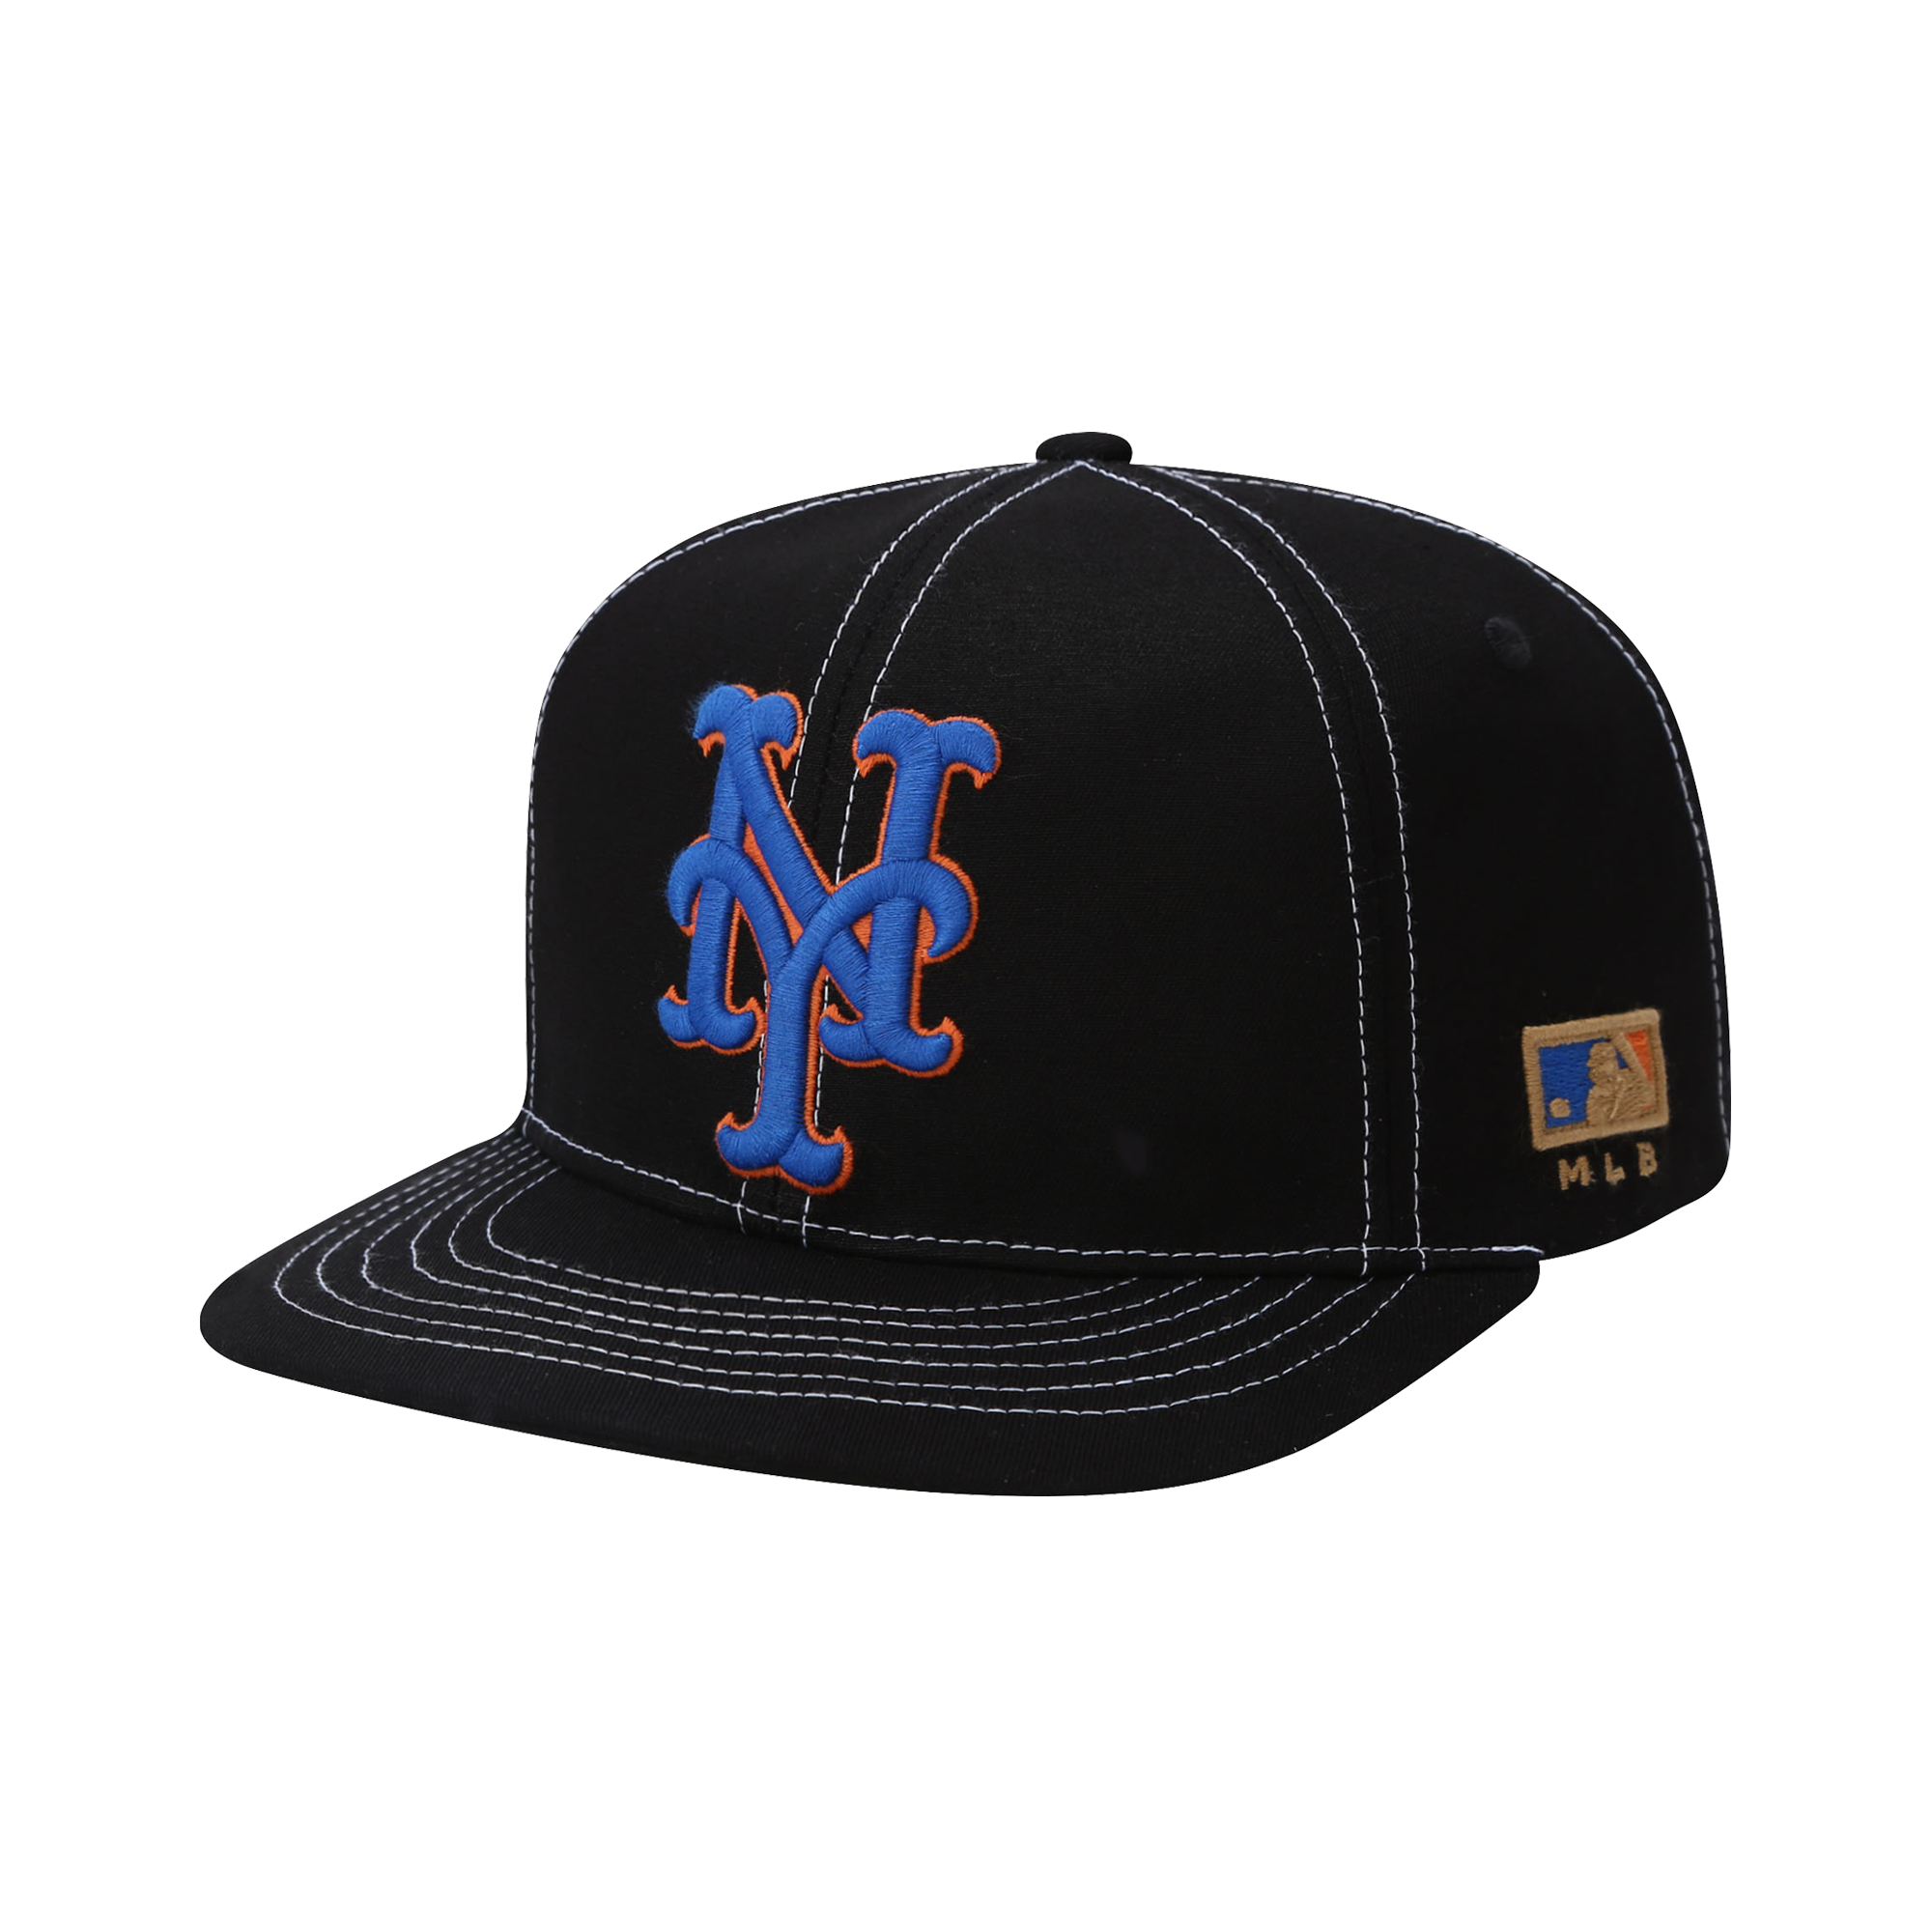 NEW YORK METS COOPERS BIG APPLIQUE FLAT VISOR